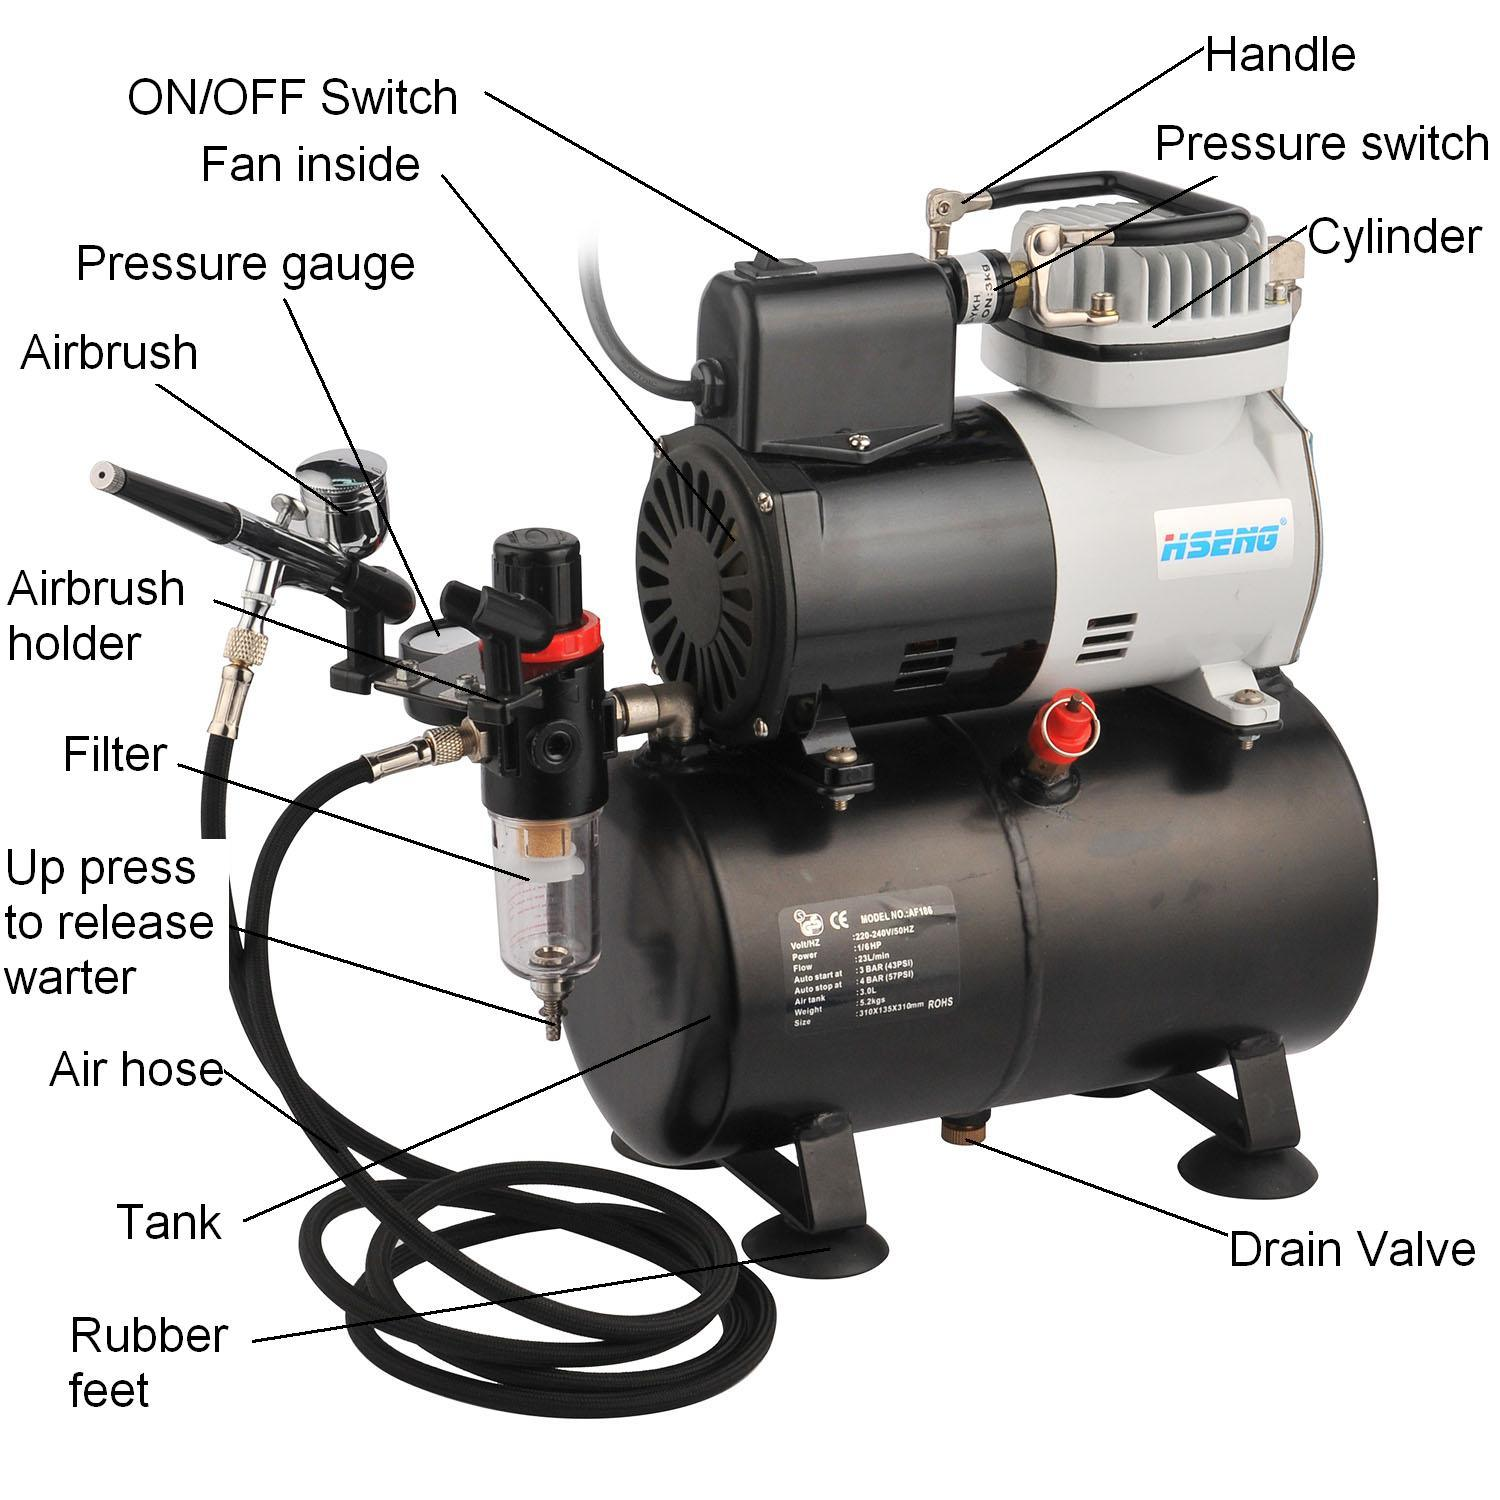 Af186k 2016 Best Selling Products Airbrush Compressor with Tank